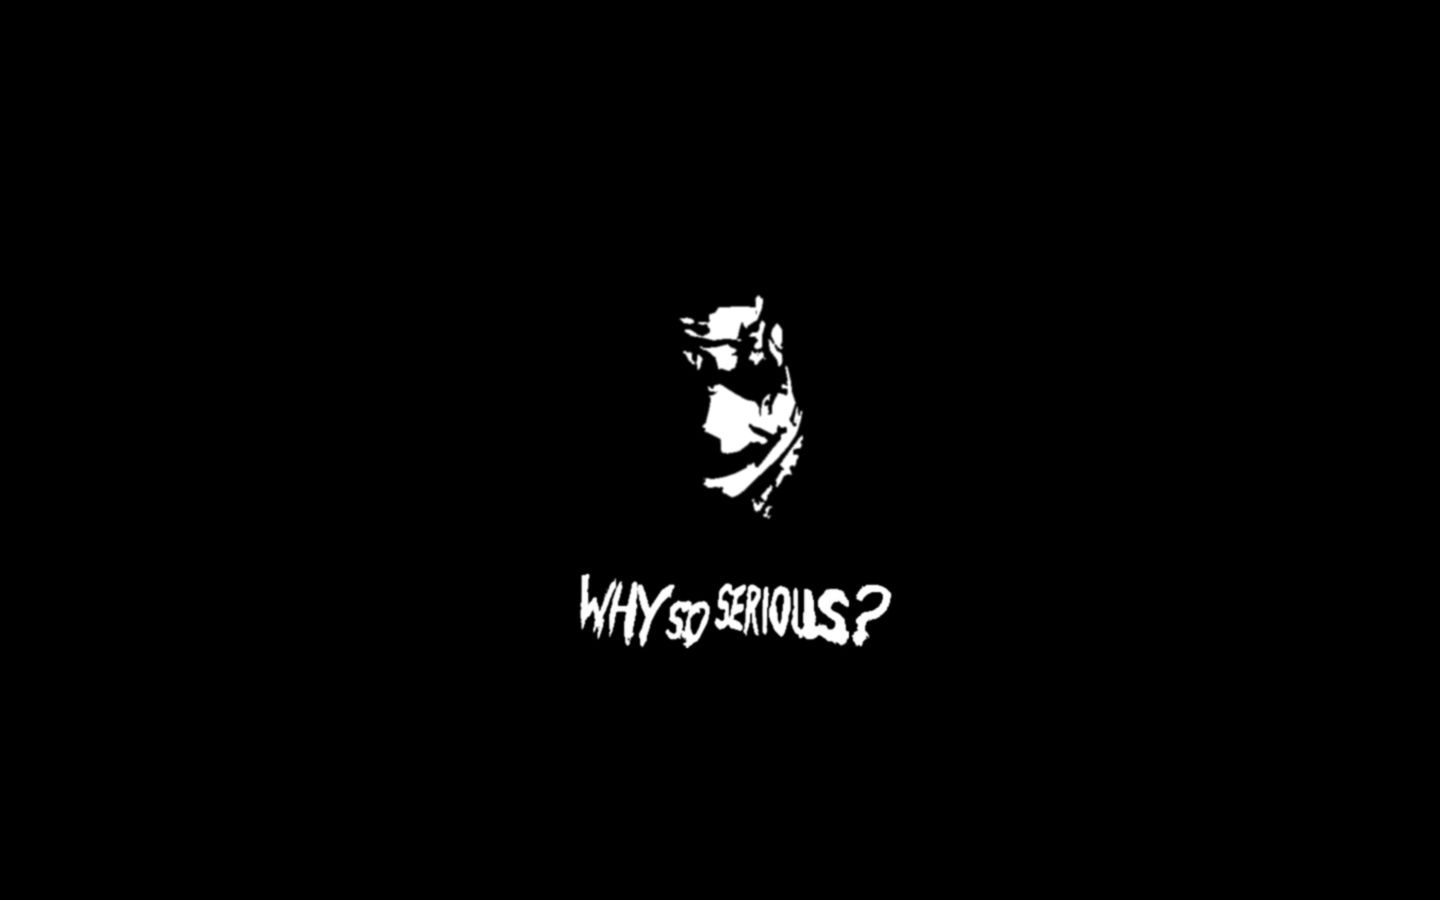 Joker Why So Serious Wallpapers Photo